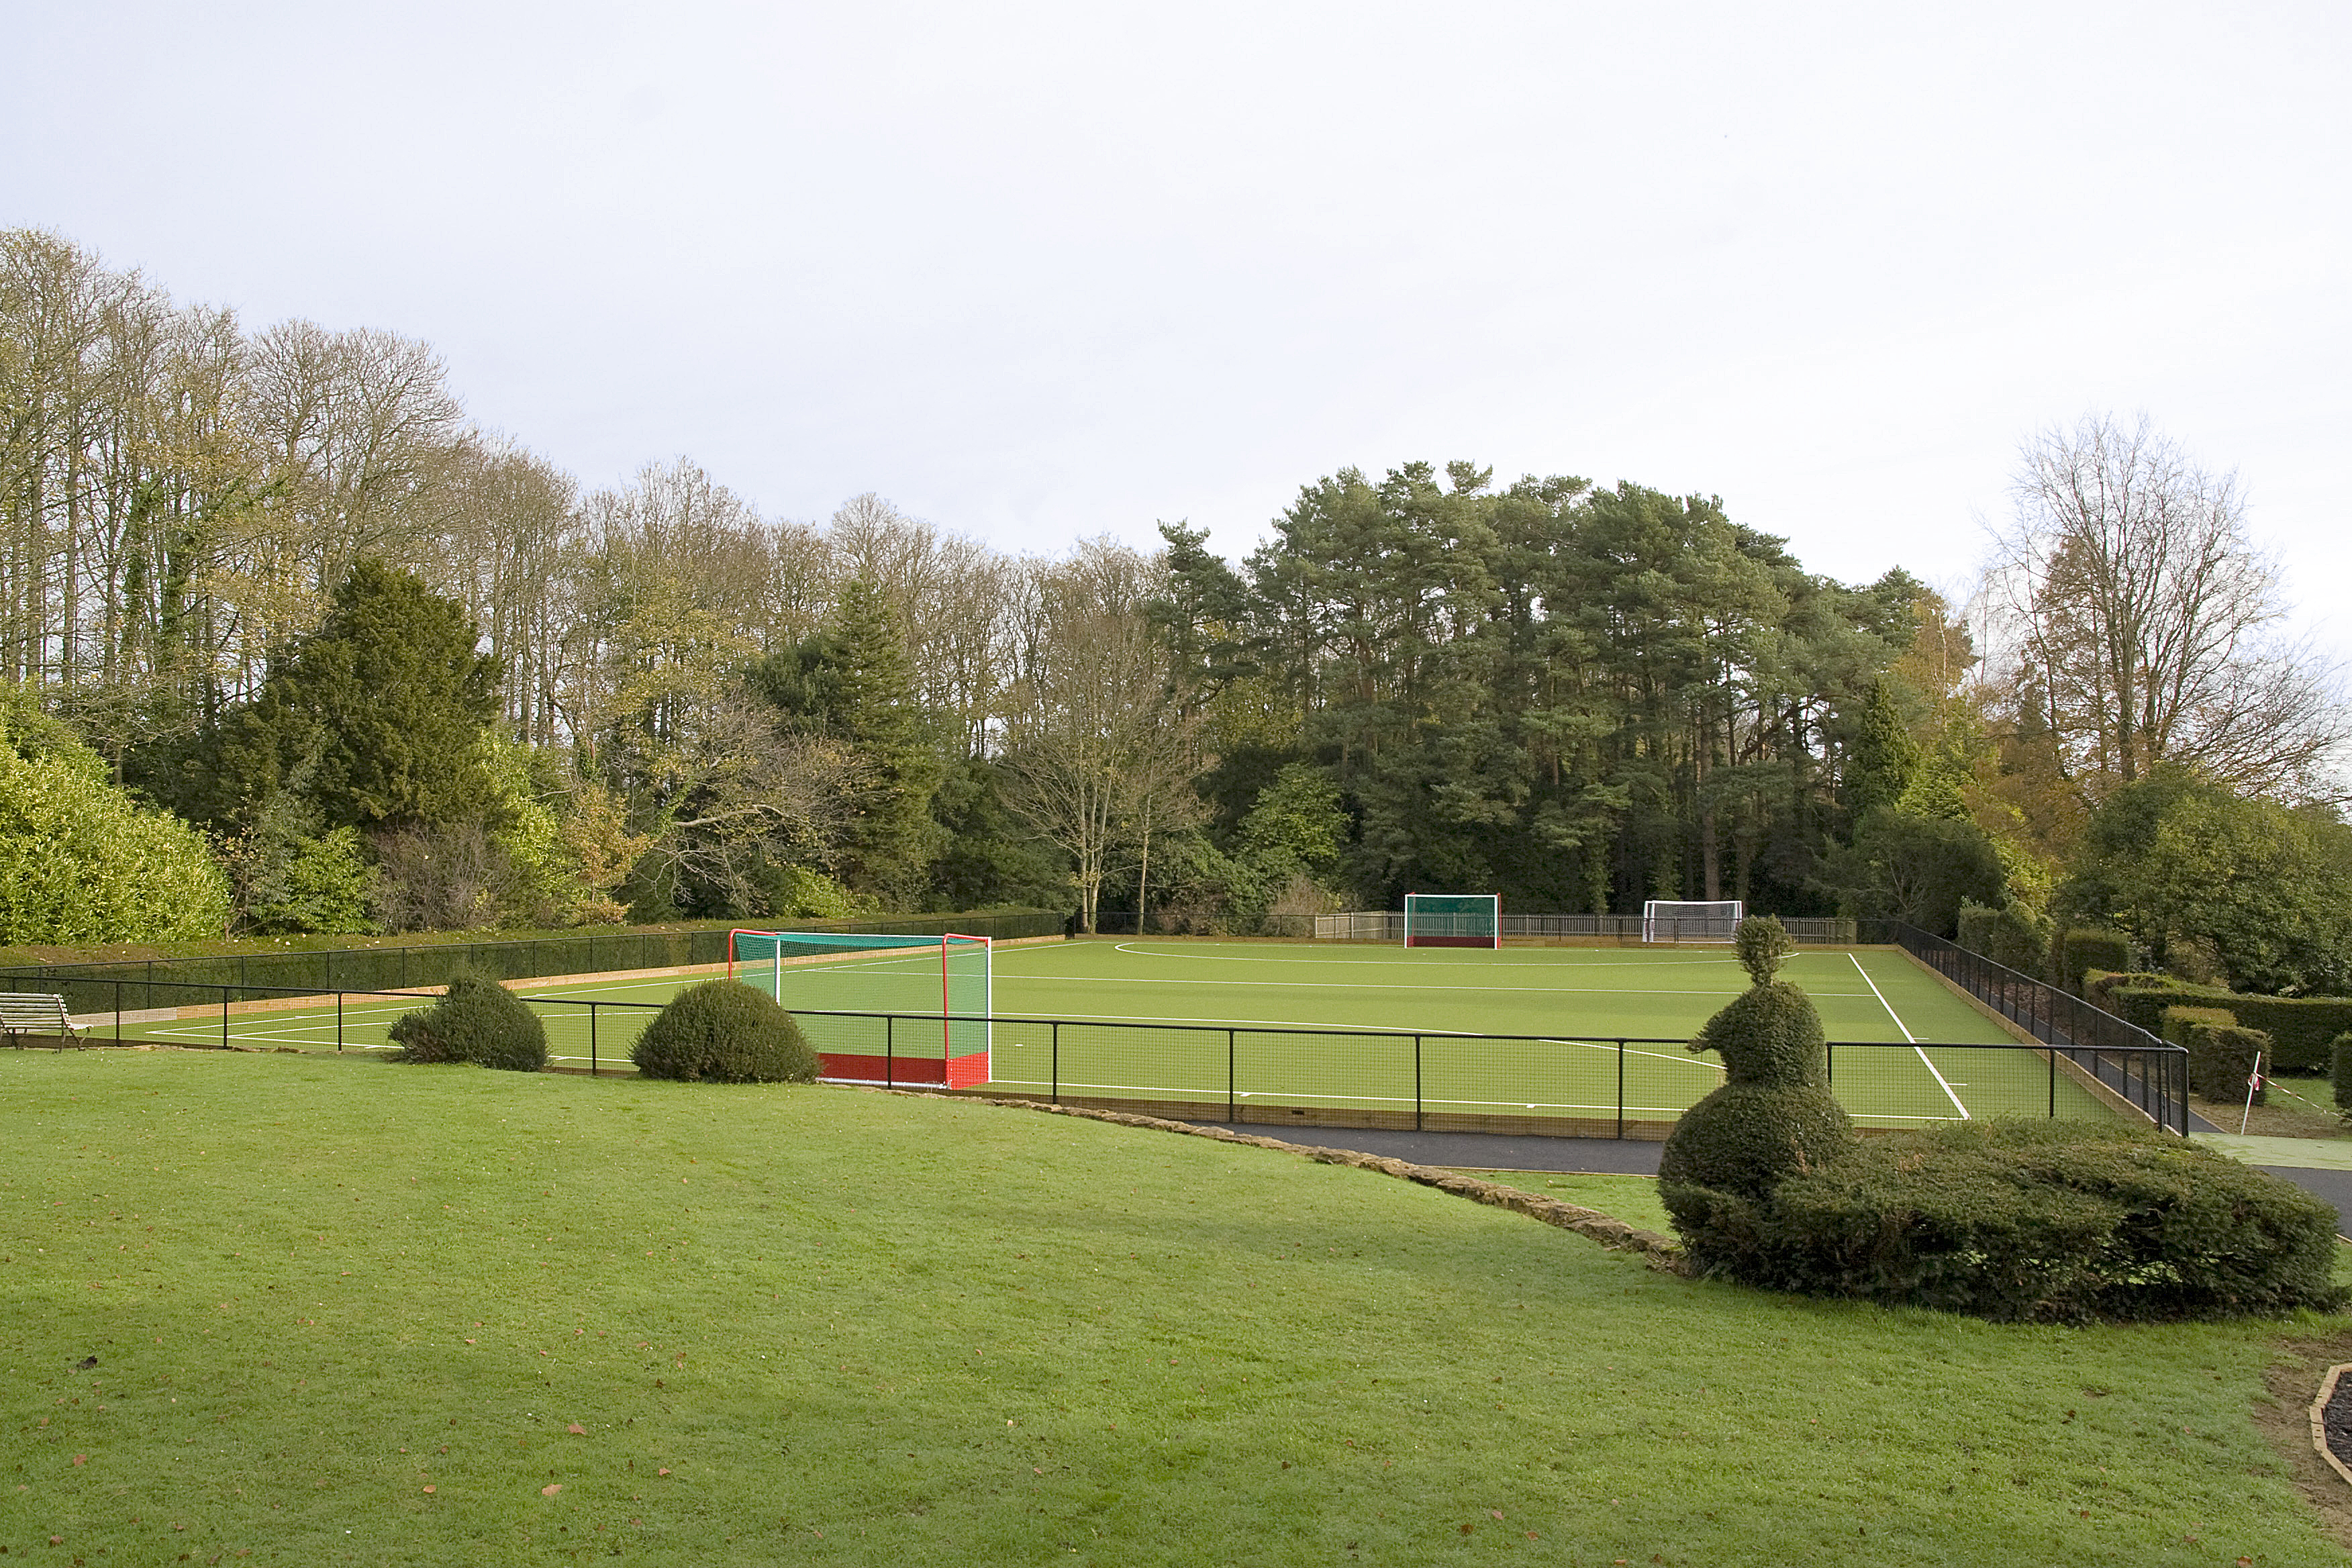 New hockey pitch - Perrott Hill School, Somerset